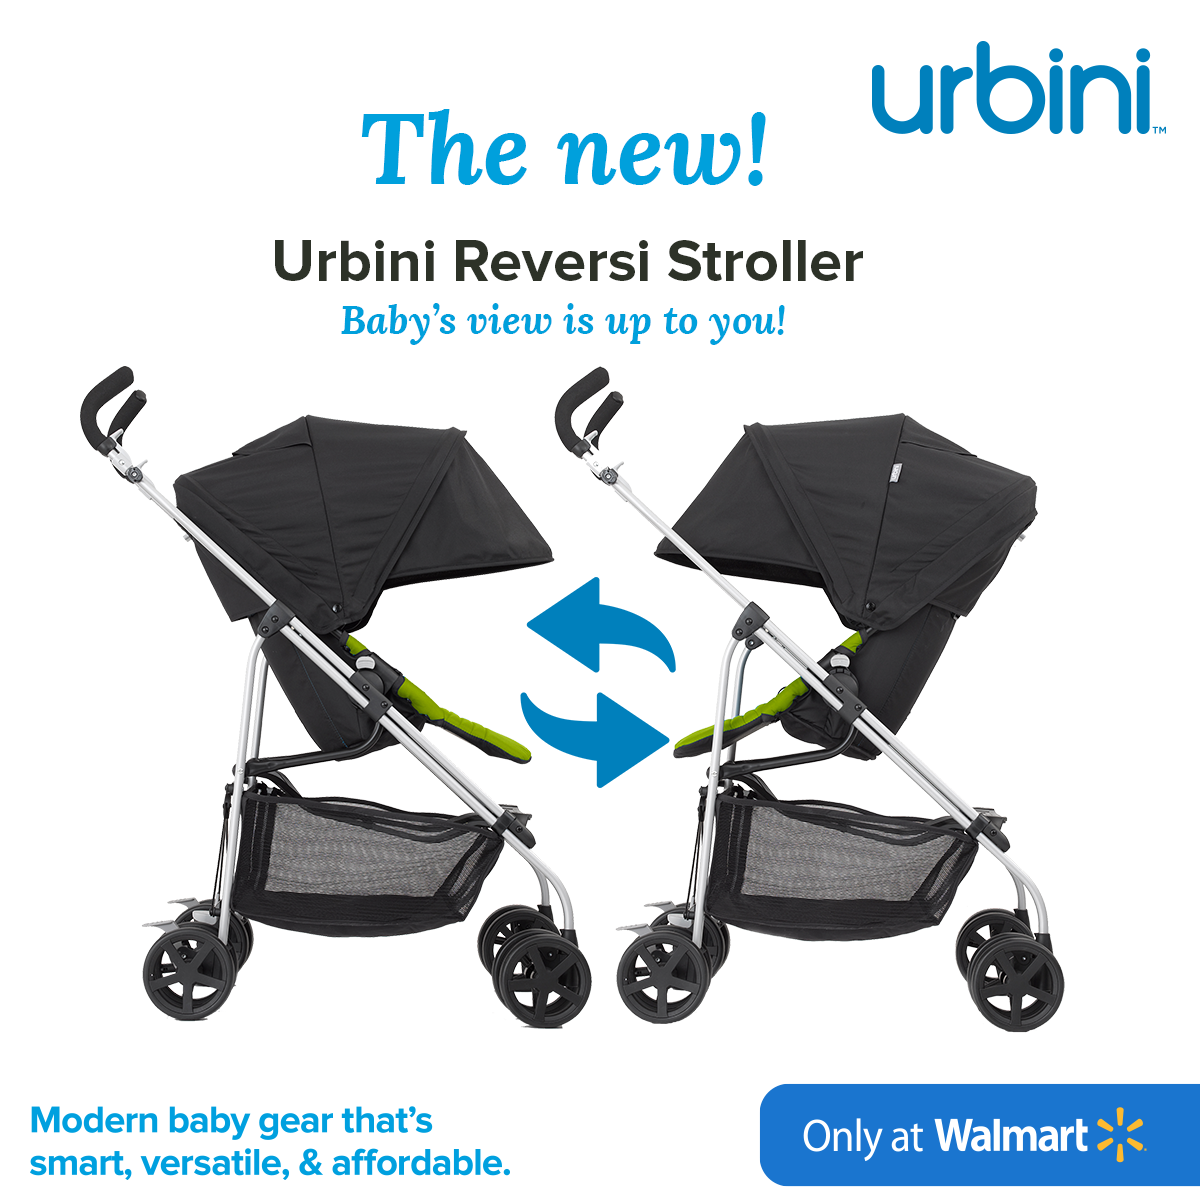 Urbini On Twitter Reverse Your Daily Stroll With Our New Urbini